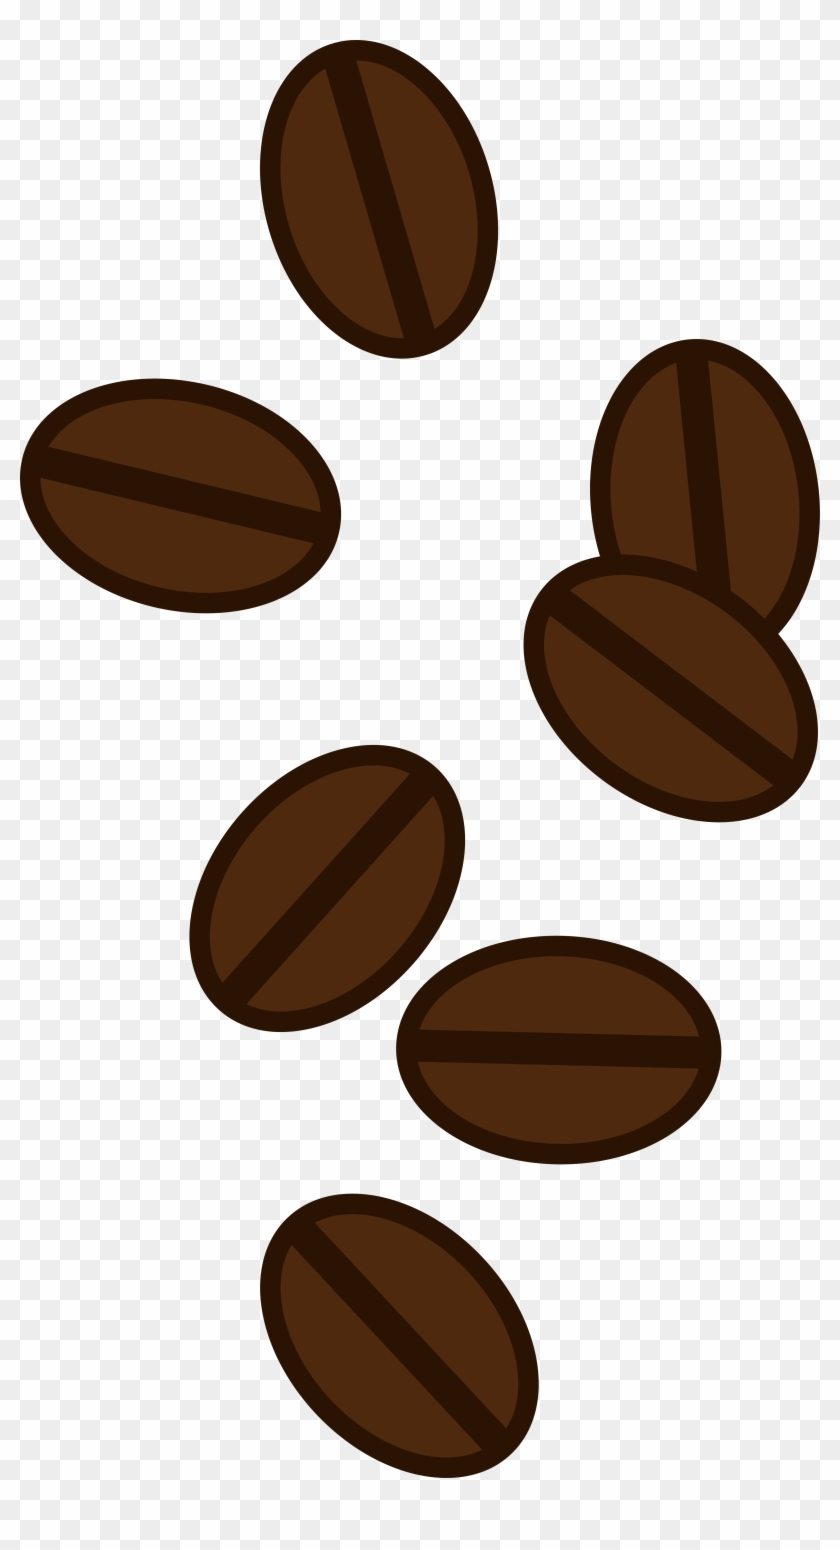 Plant Clipart Coffee Bean - Coffee Bean Clipart #14007